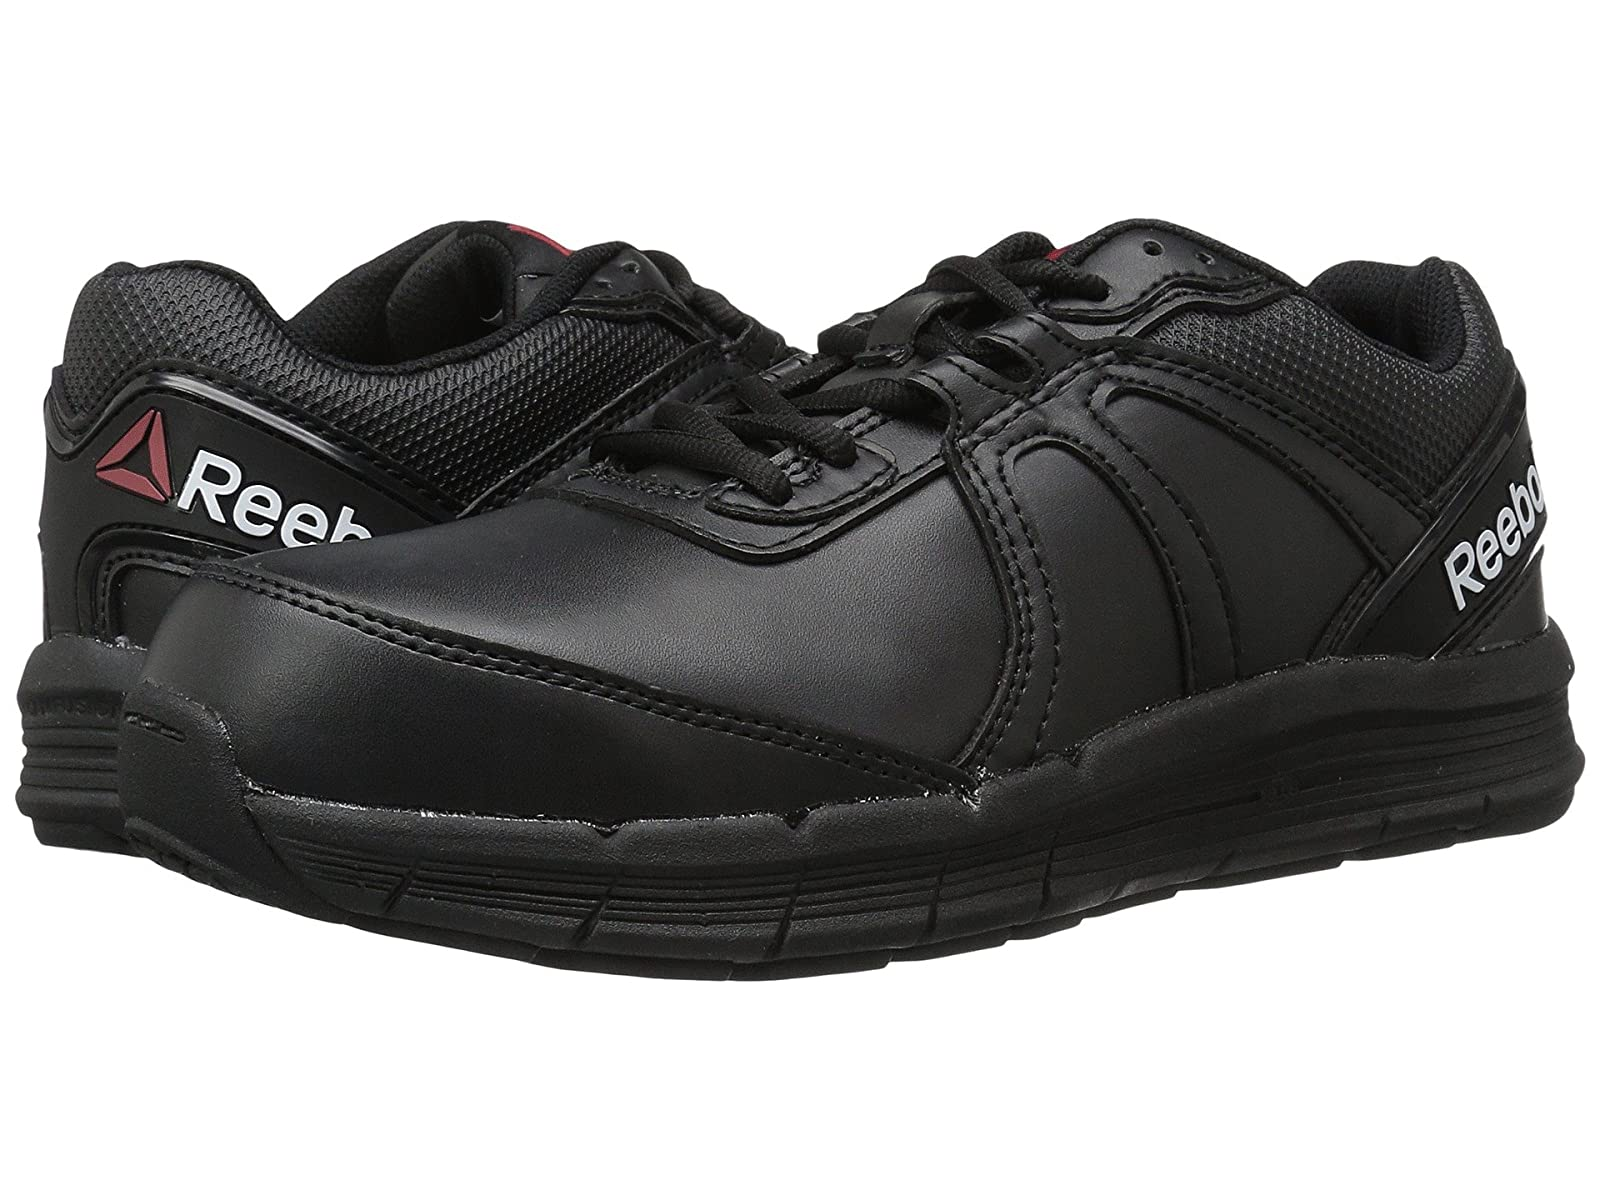 Reebok Work Guide Work Steel ToeAtmospheric grades have affordable shoes